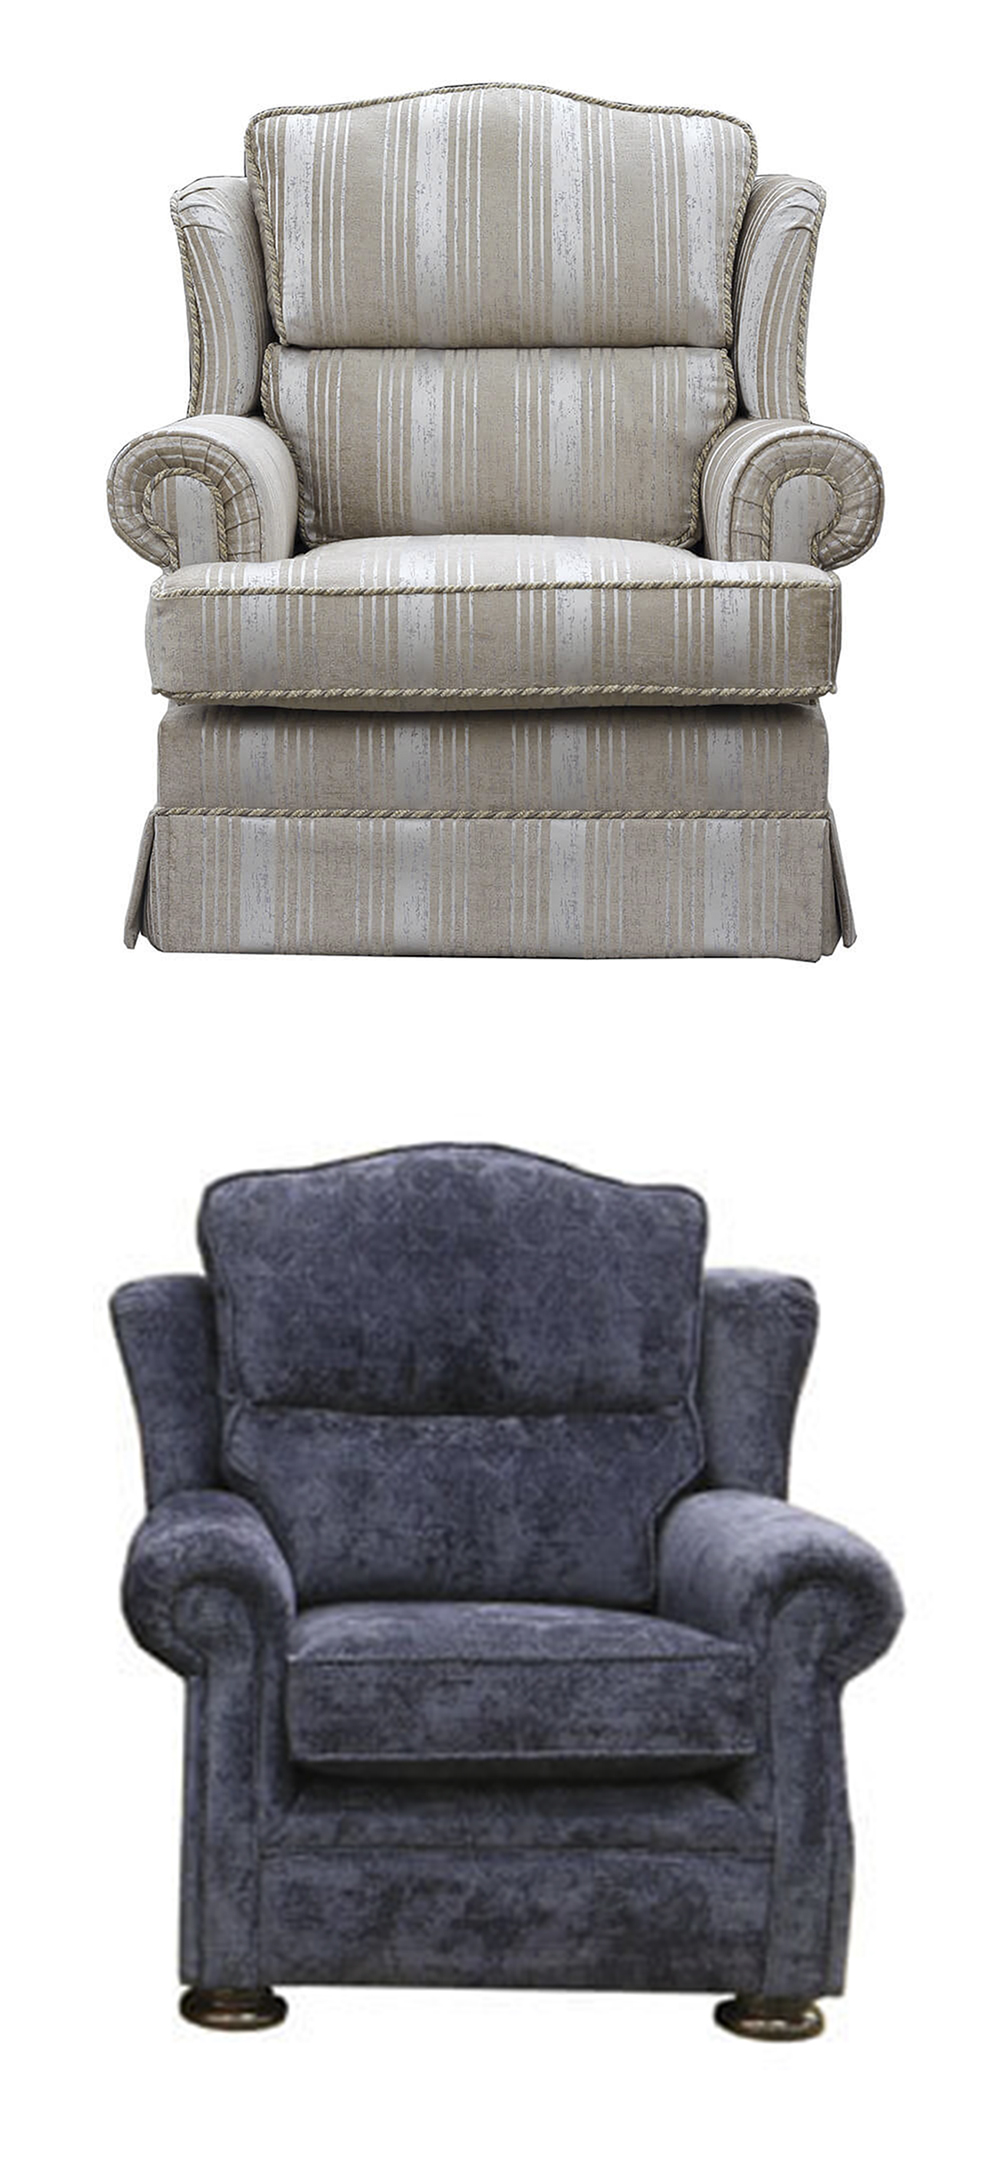 Sienna Chair Before & After